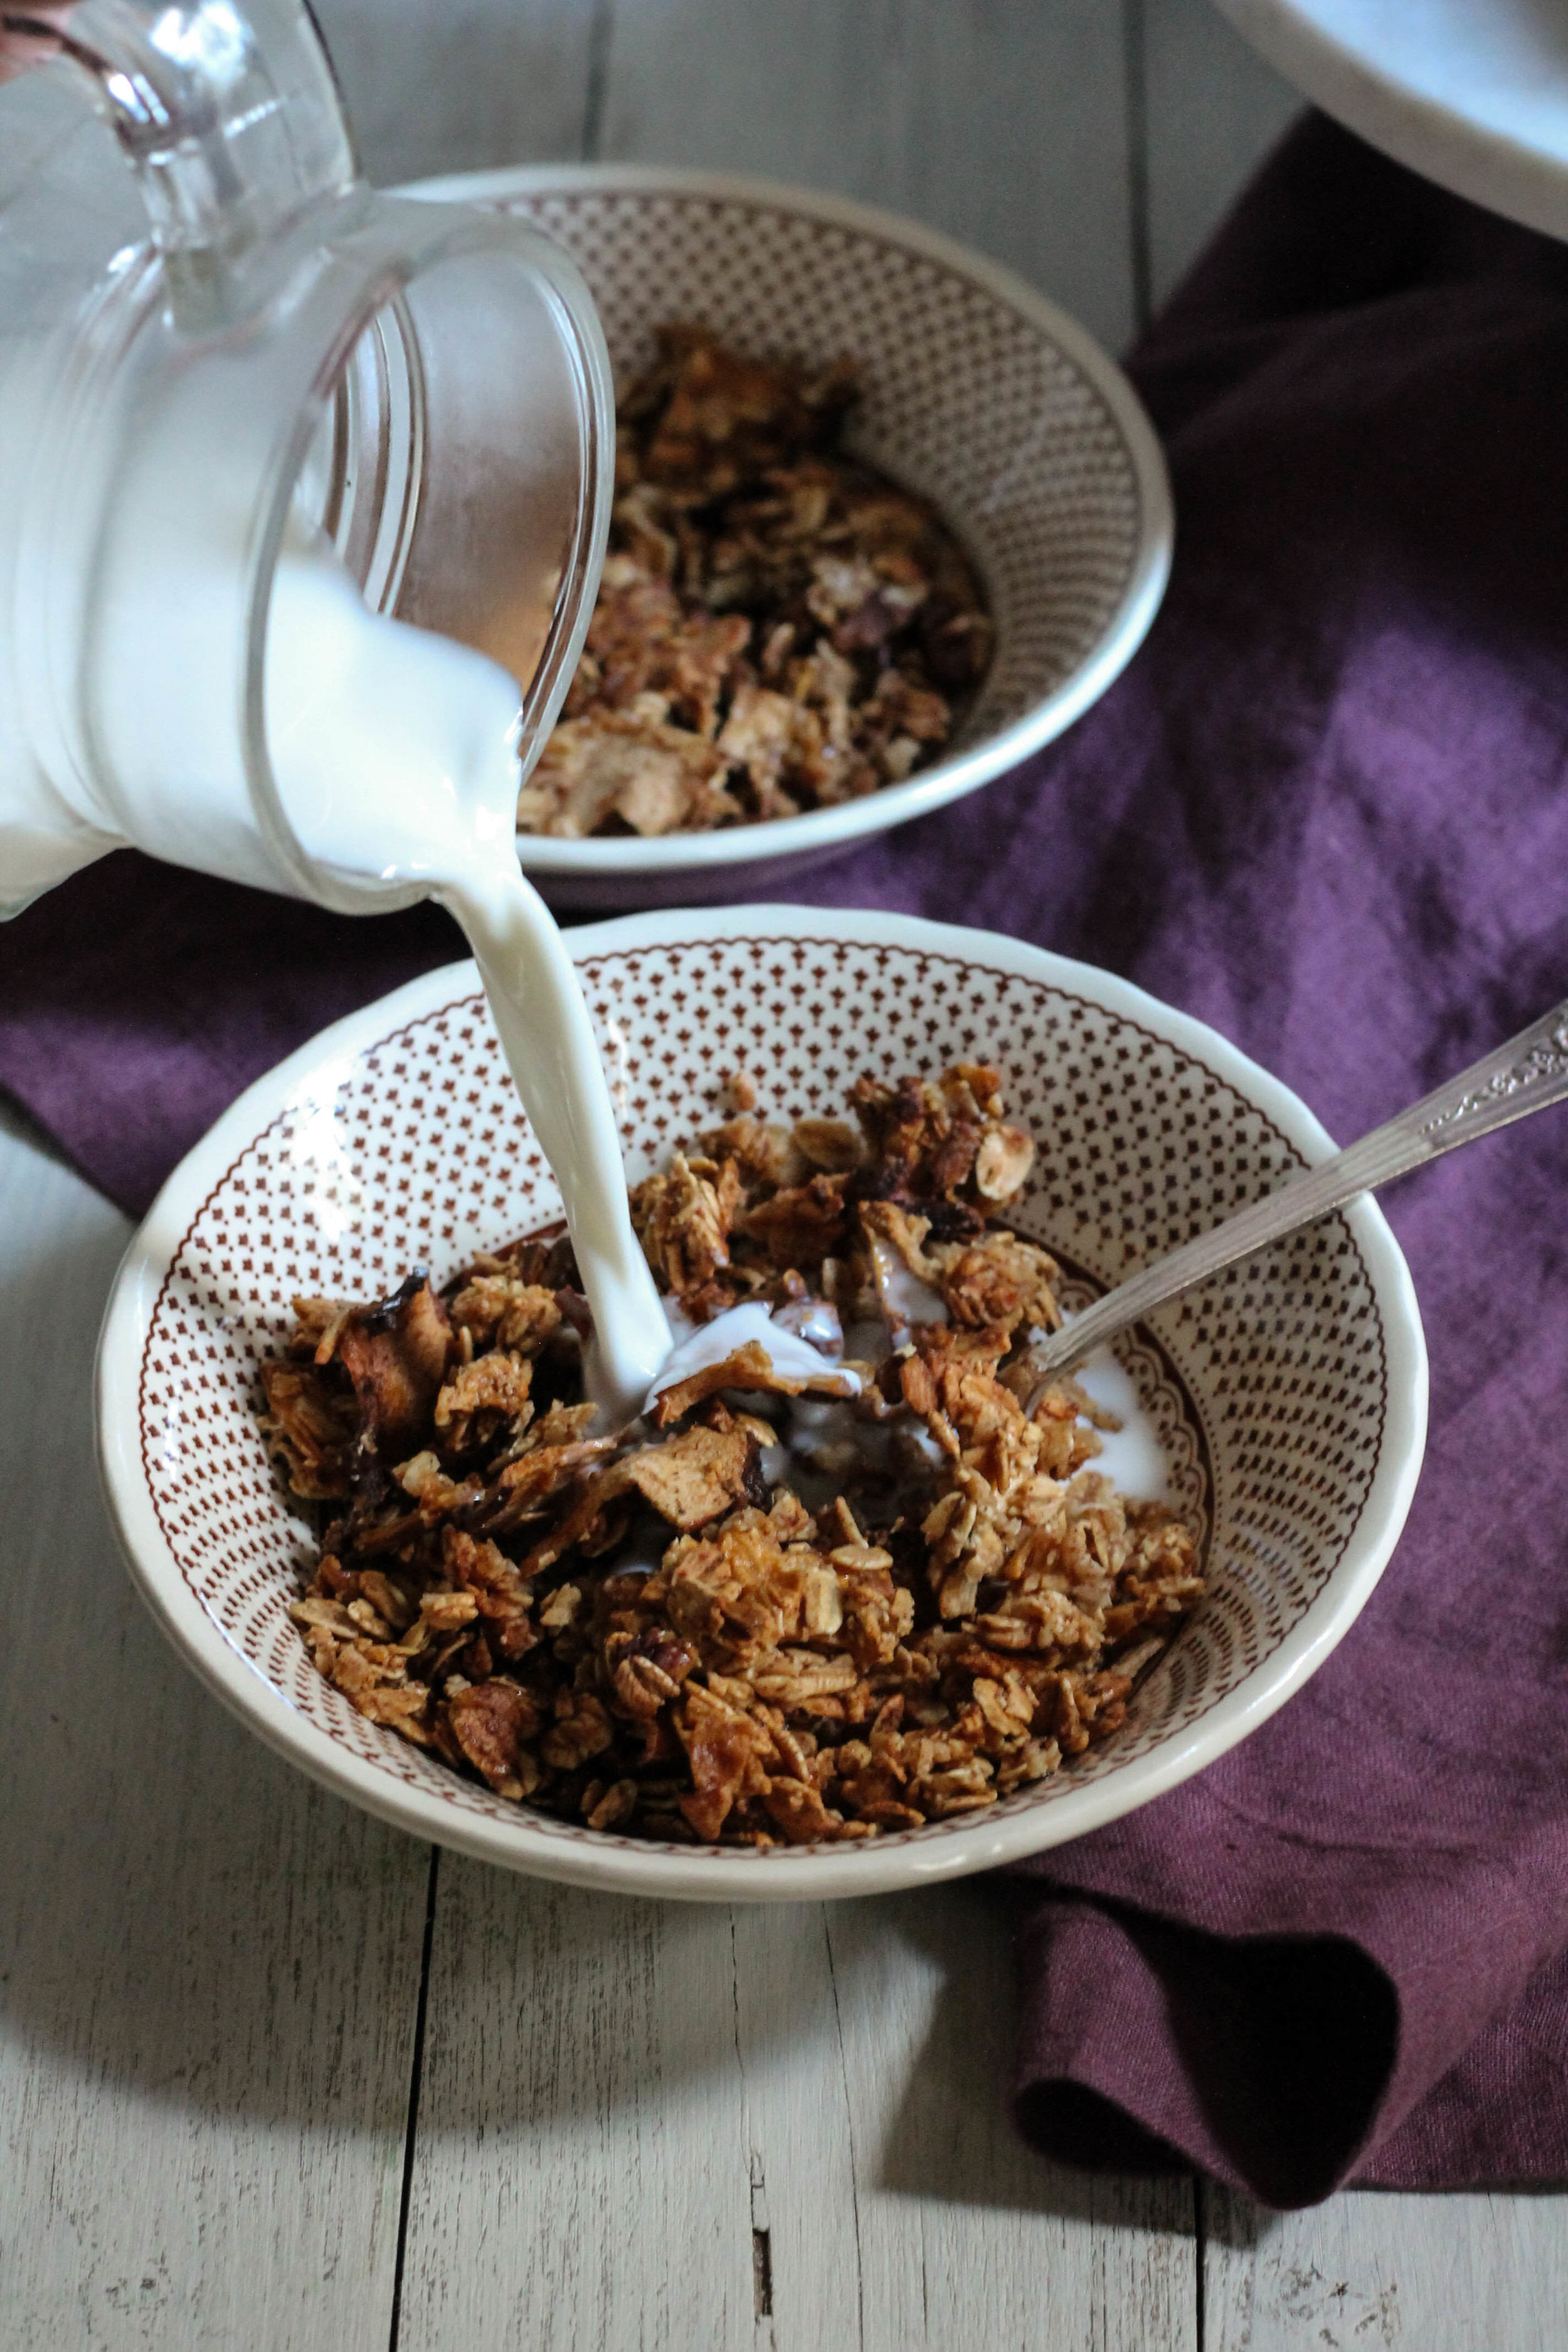 Apple & Oat Cereal